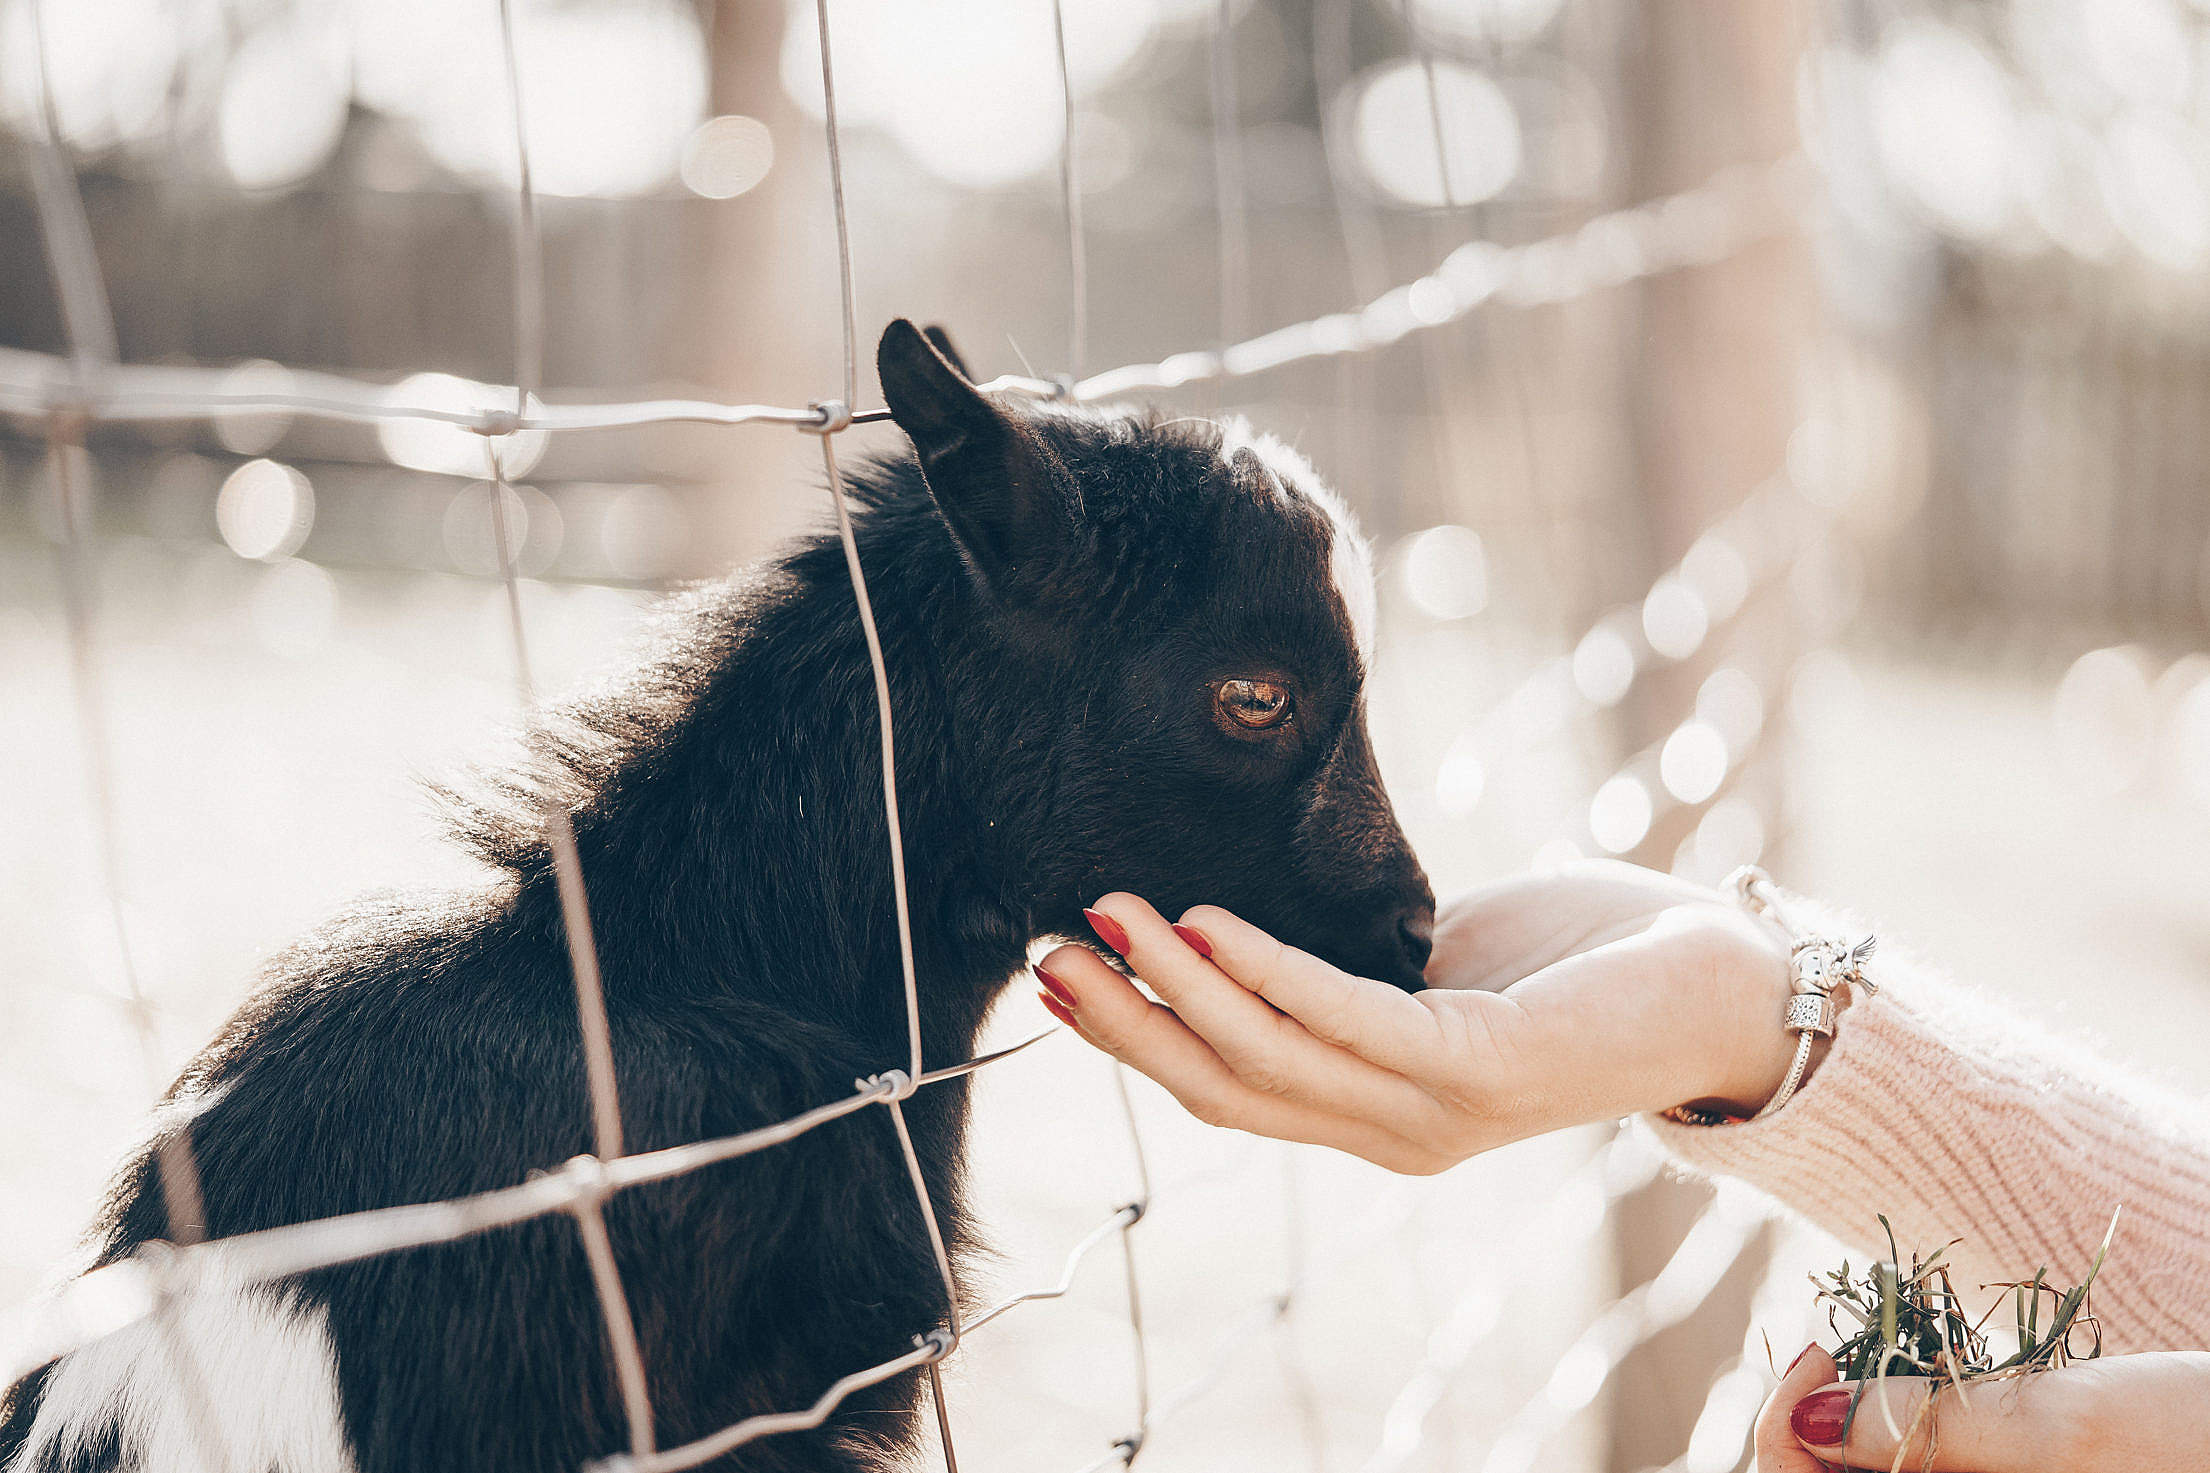 Woman Feeding a Baby Goat Free Photo